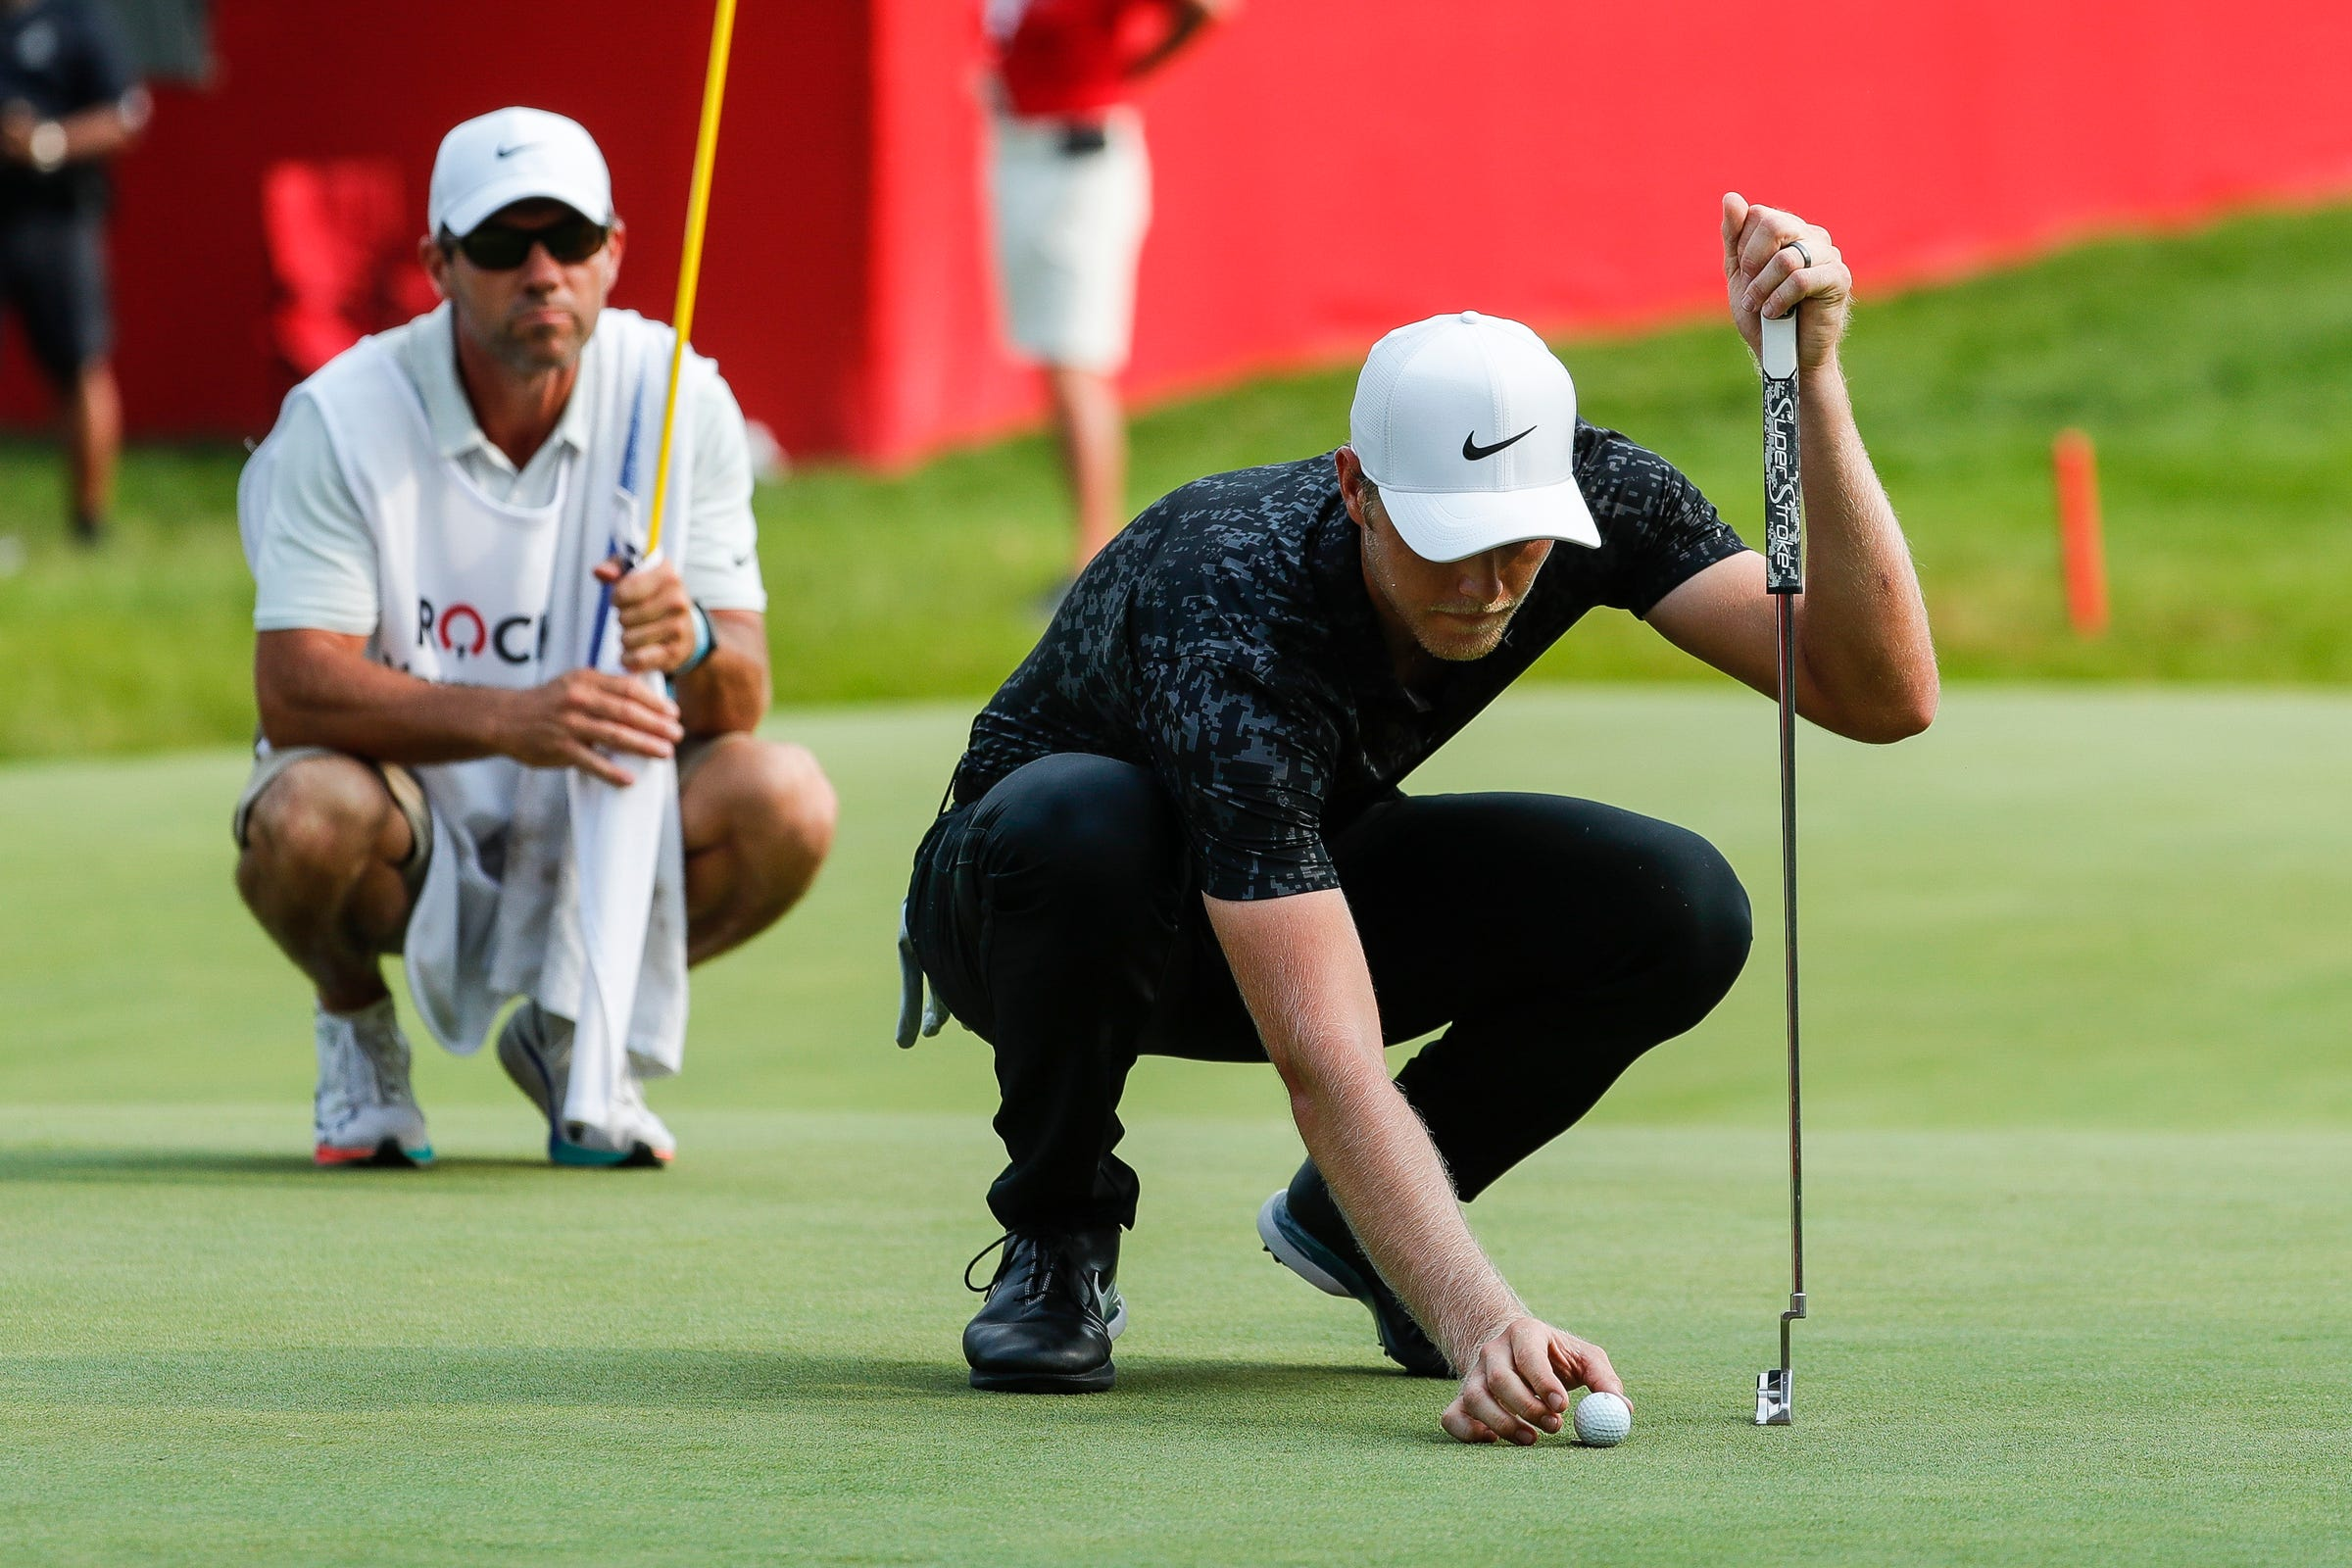 How to reduce the risk of injury when playing golf